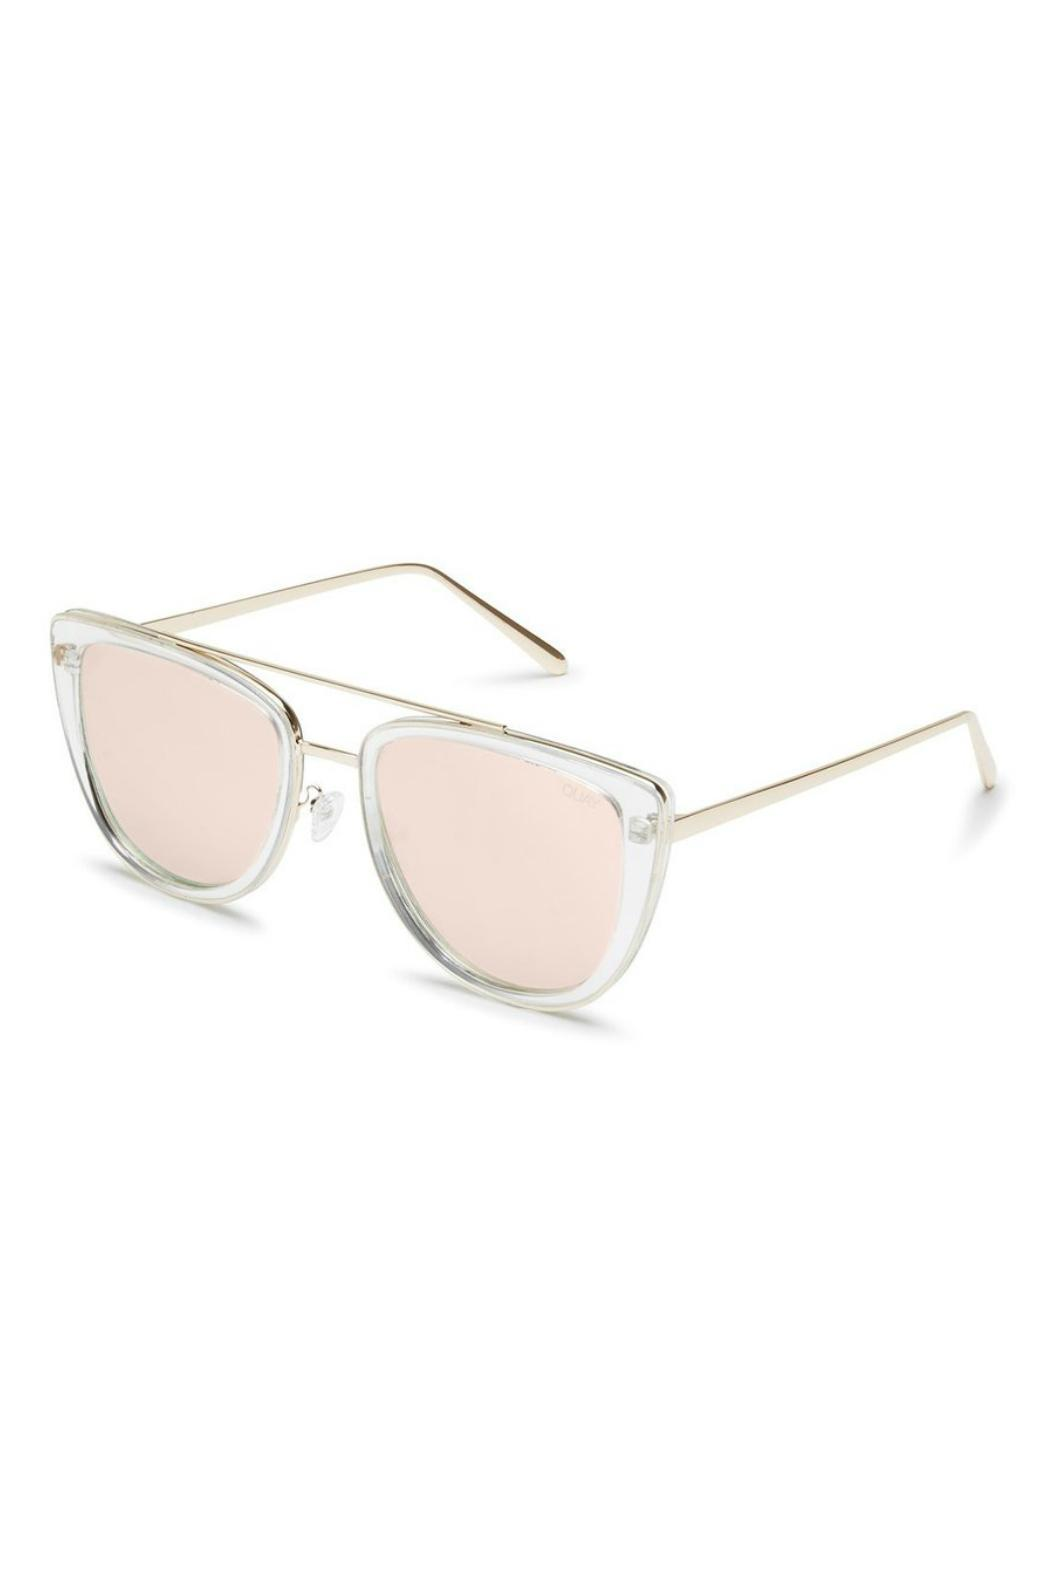 Quay Australia French Kiss Sunnies - Front Full Image